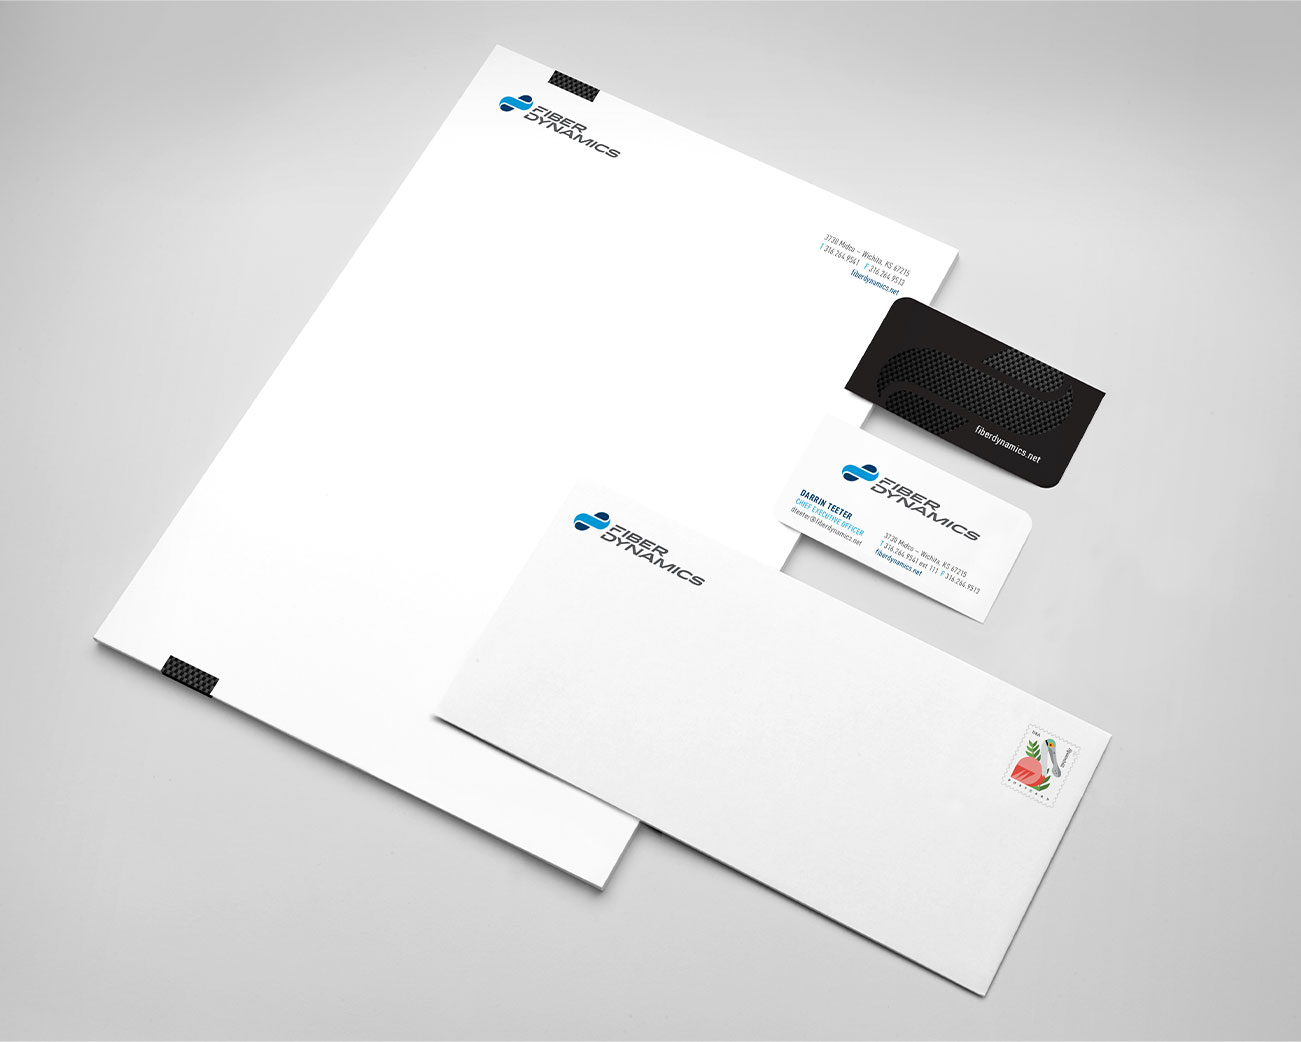 manufacturing brand print assets